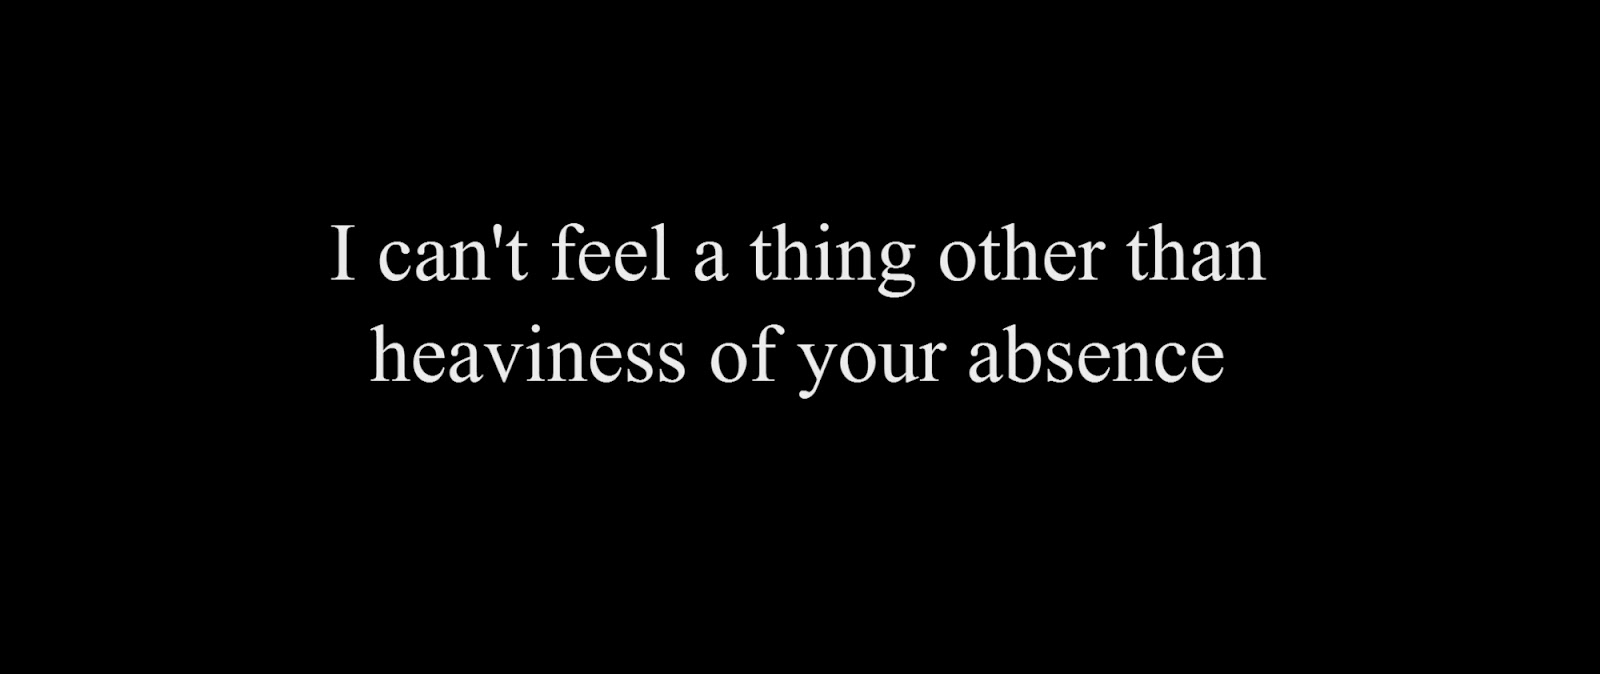 I can't feel a thing other than heaviness of your absence